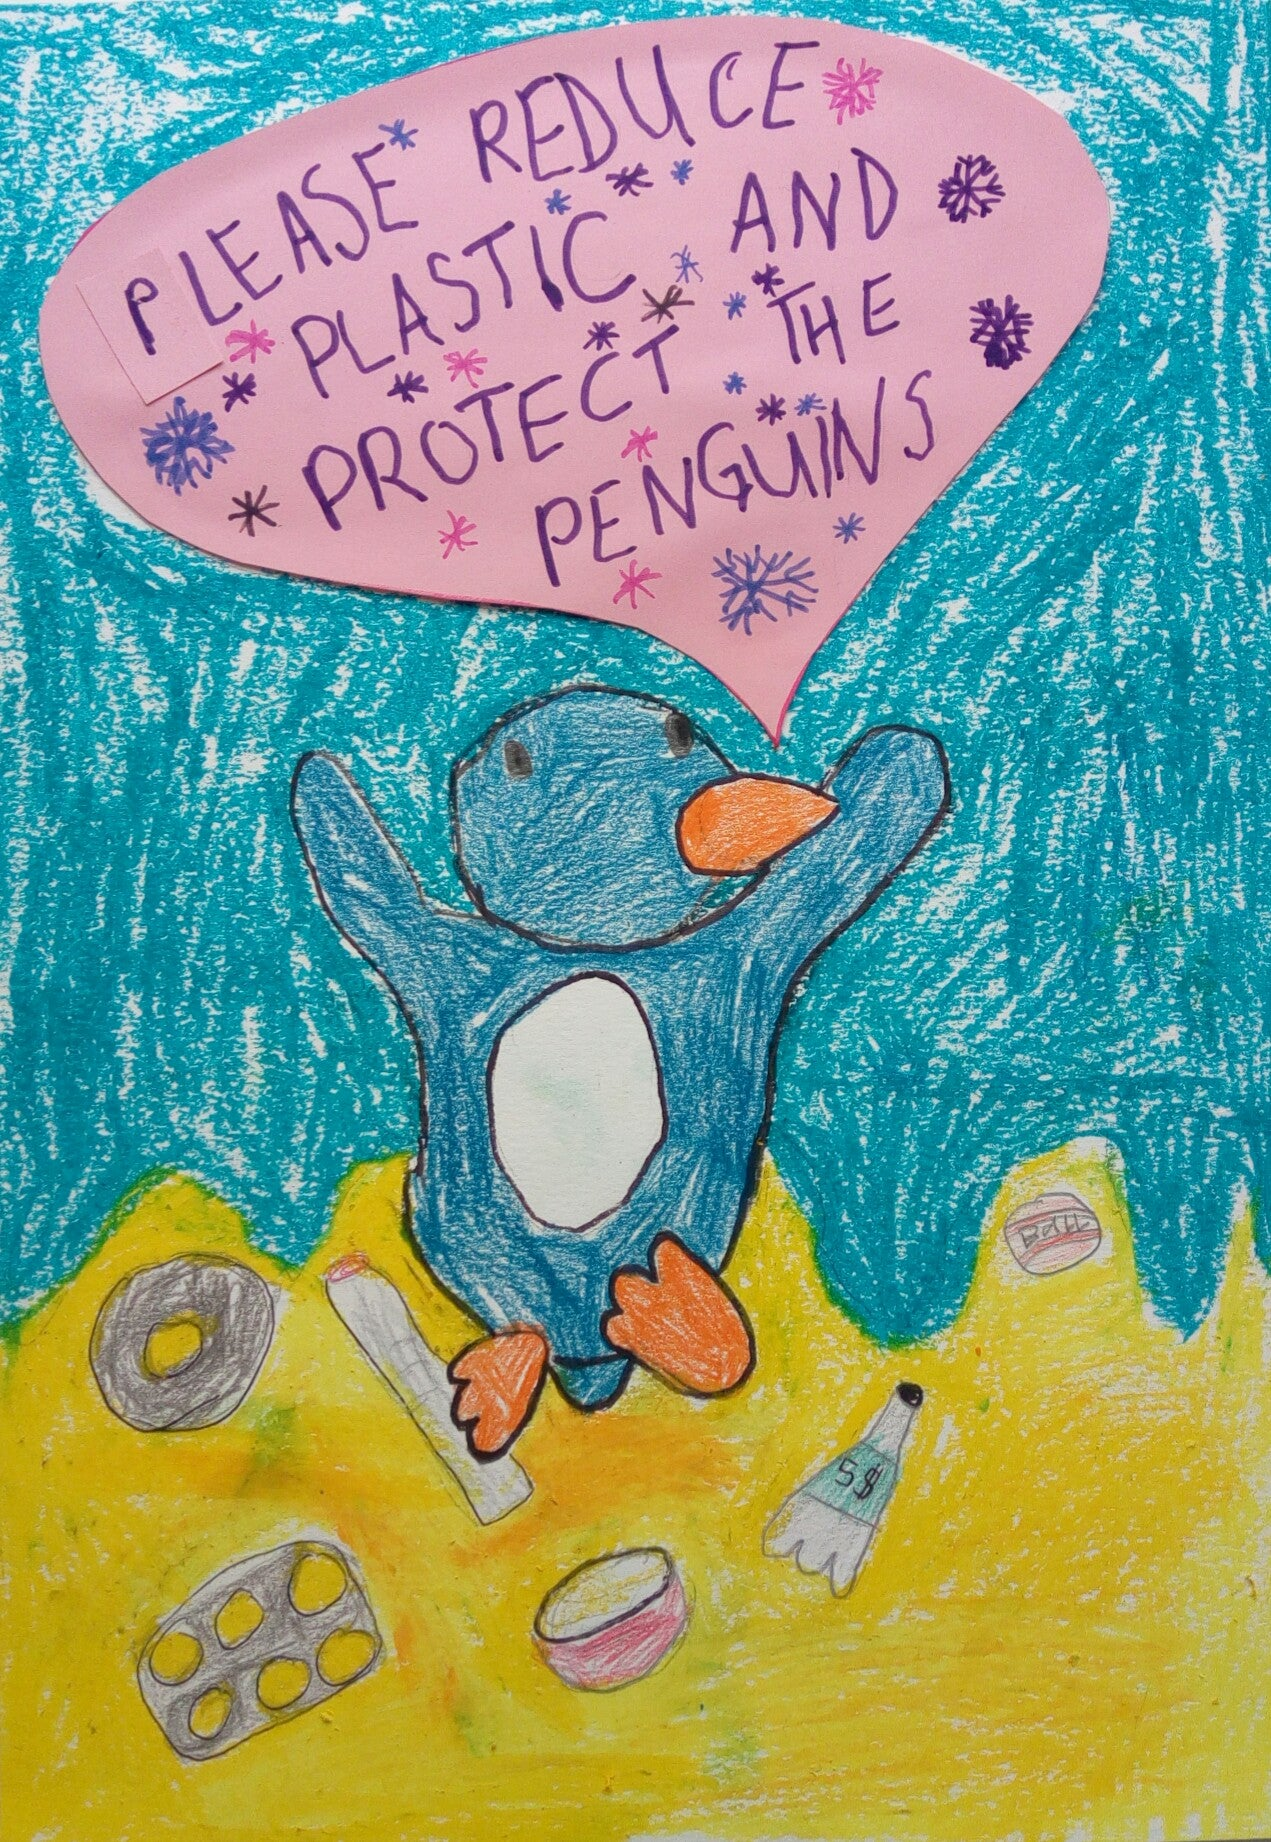 Protect the Penguins Poster: Competition winners